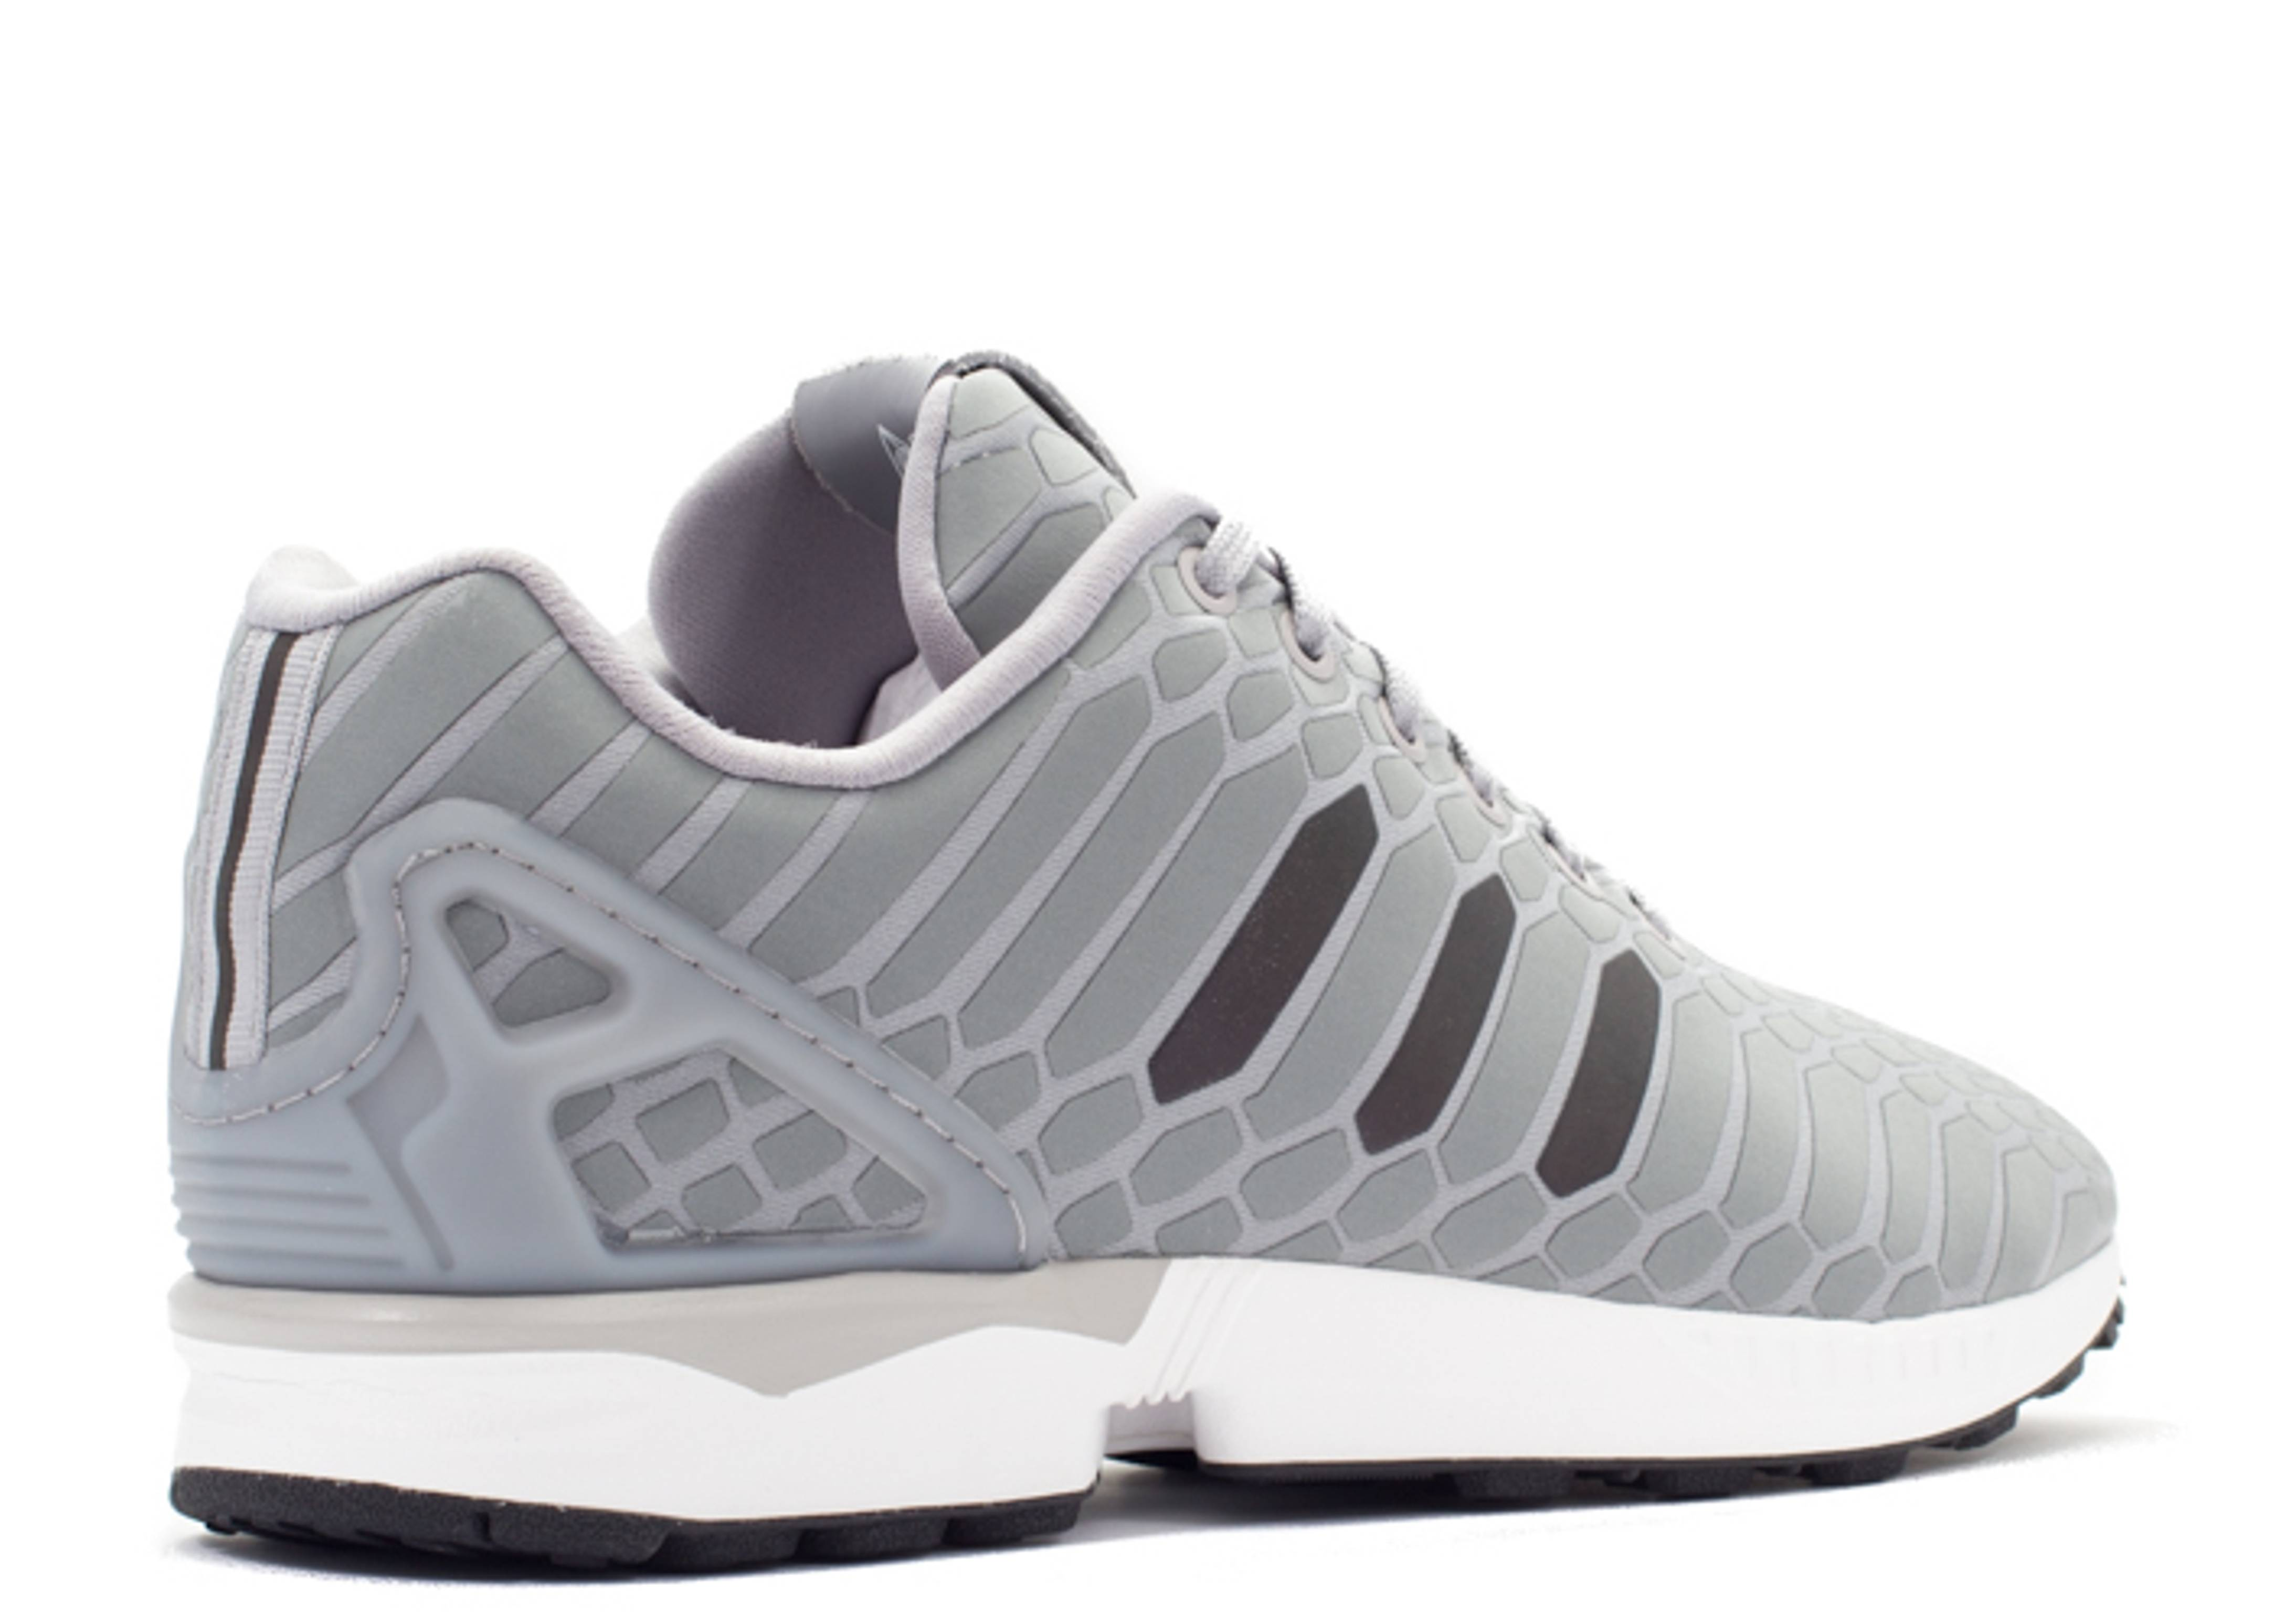 zx flux xeno adidas b24442 ltonix supcol ftwwht flight club. Black Bedroom Furniture Sets. Home Design Ideas